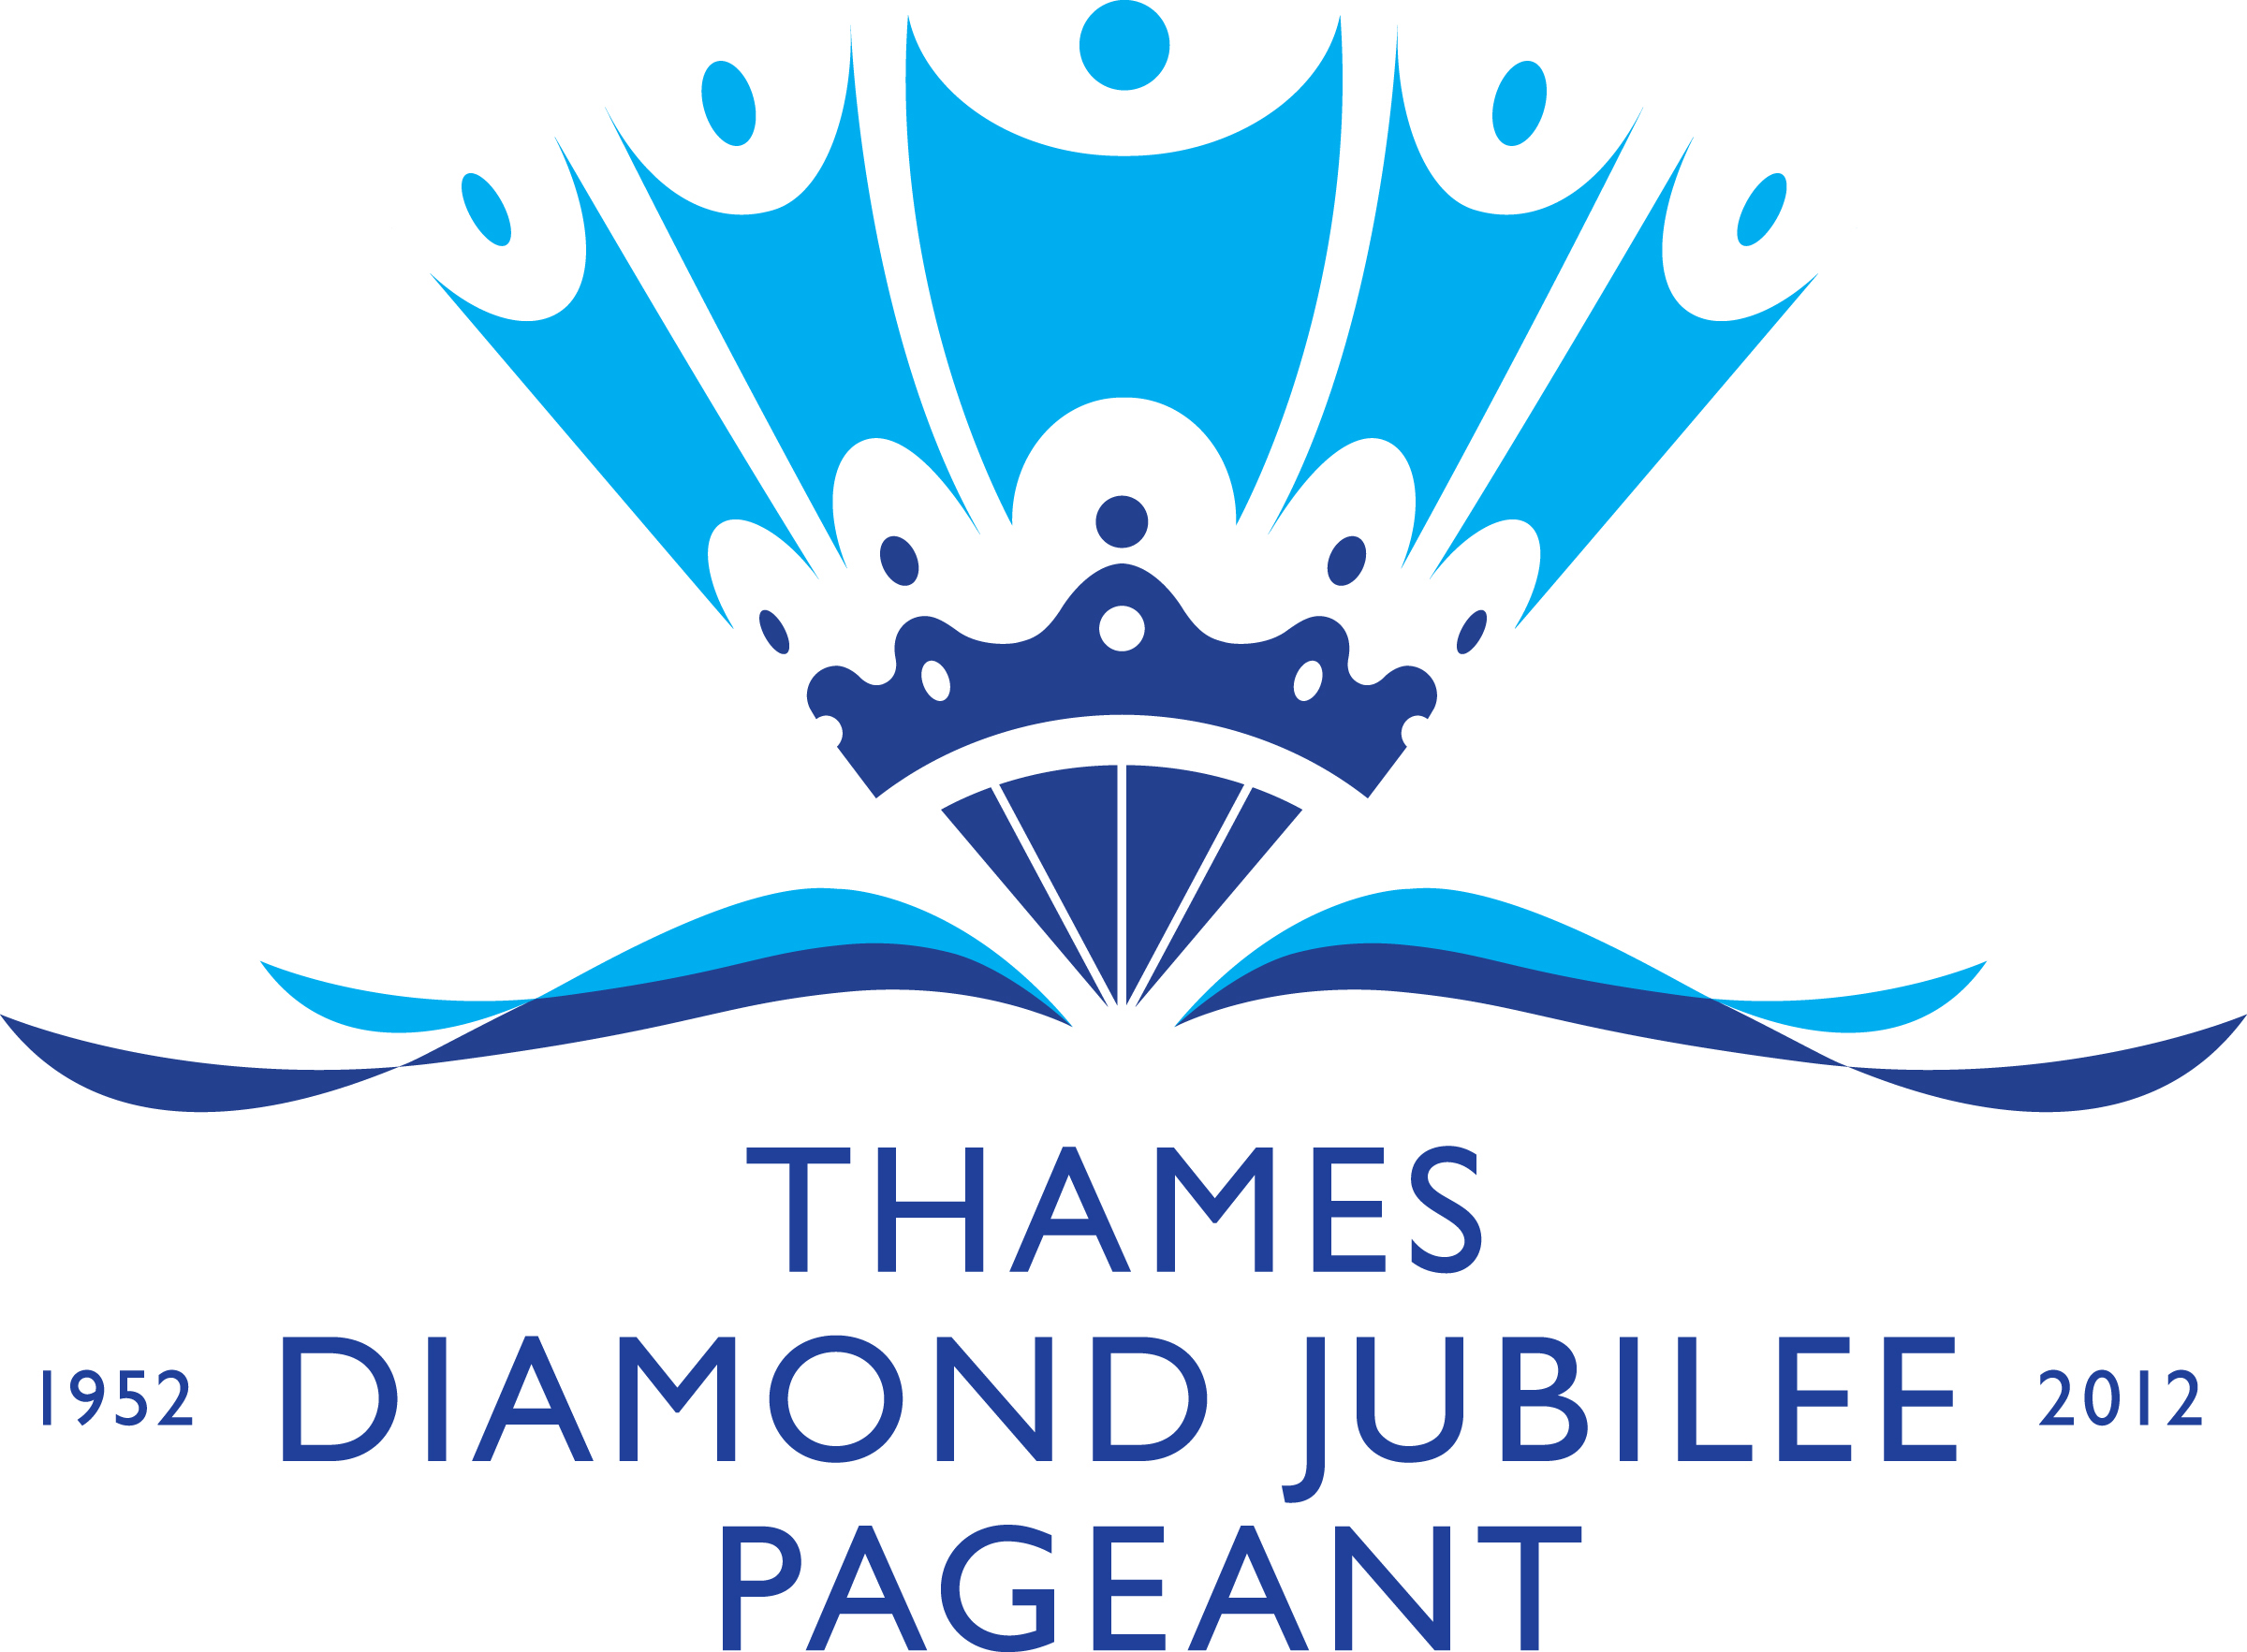 The Queen's Diamond Jubilee Pageant